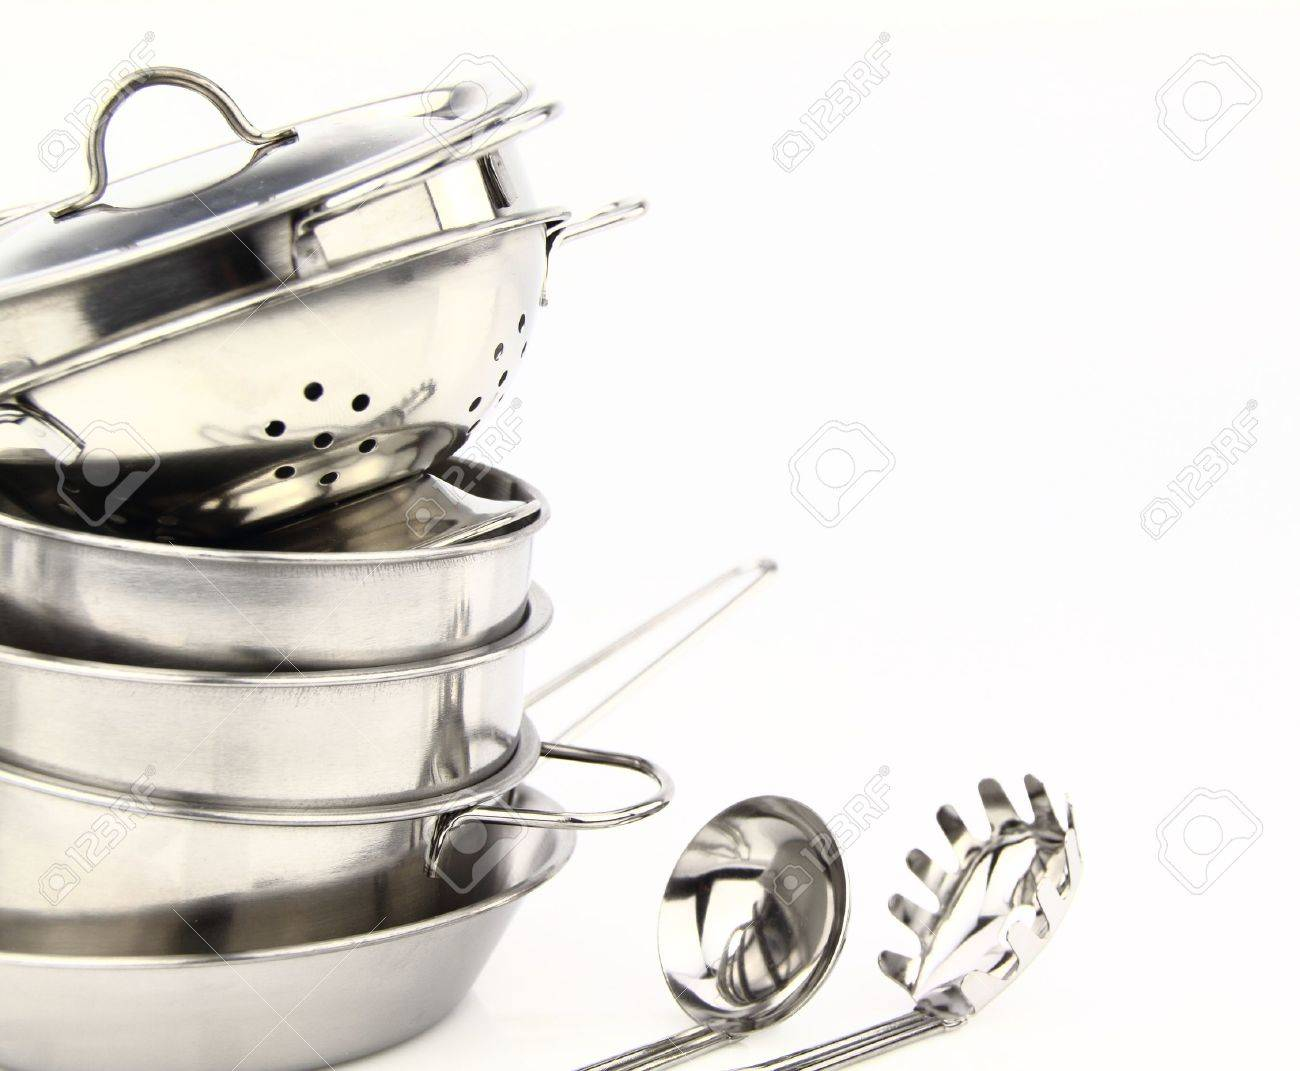 Restaurant Kitchenware group of stainless steel kitchenware stock photo, picture and